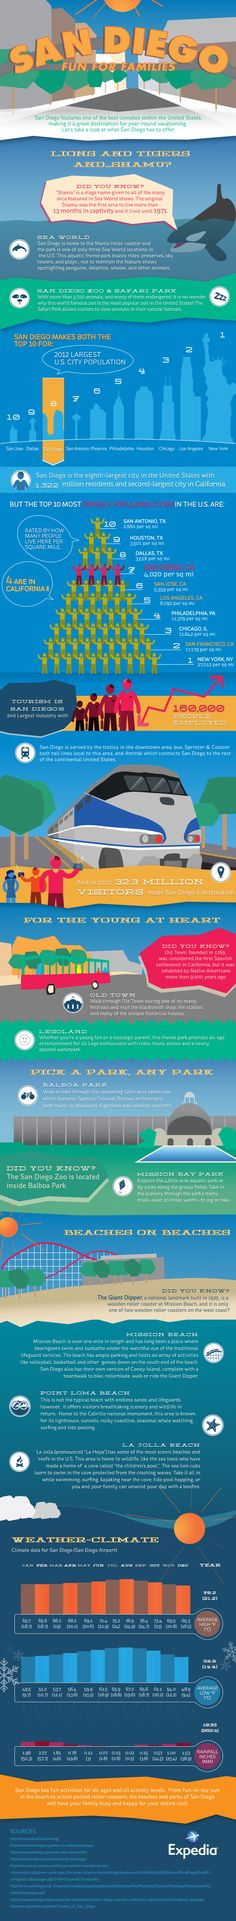 Discover why San Diego is a great family destination all year-round. | Expedia's San Diego Travel Guide #infographic